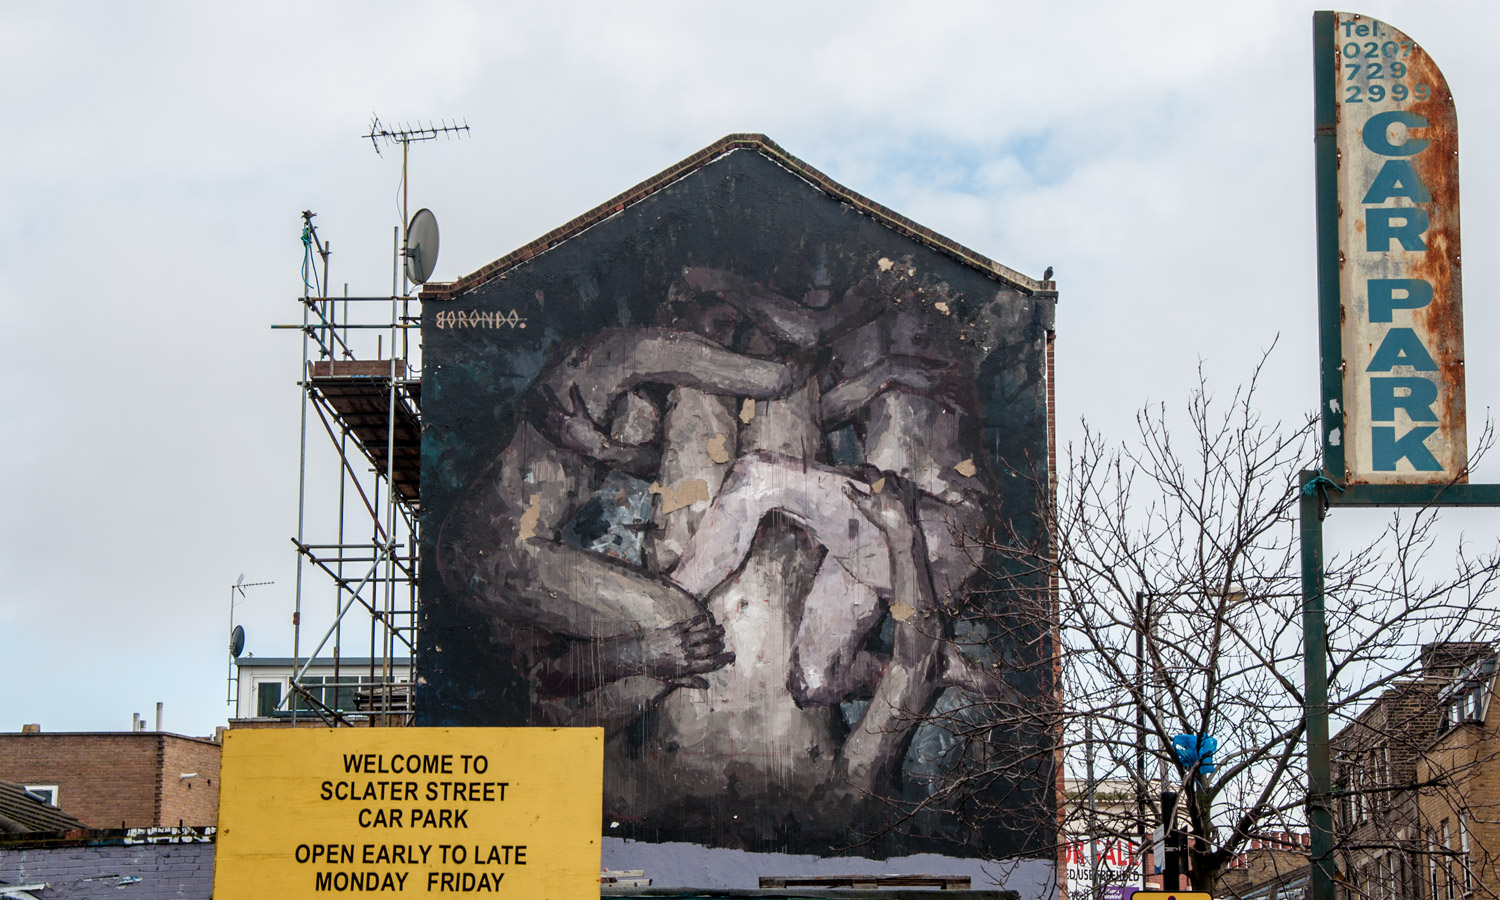 Triade by Borondo on Sclater Street